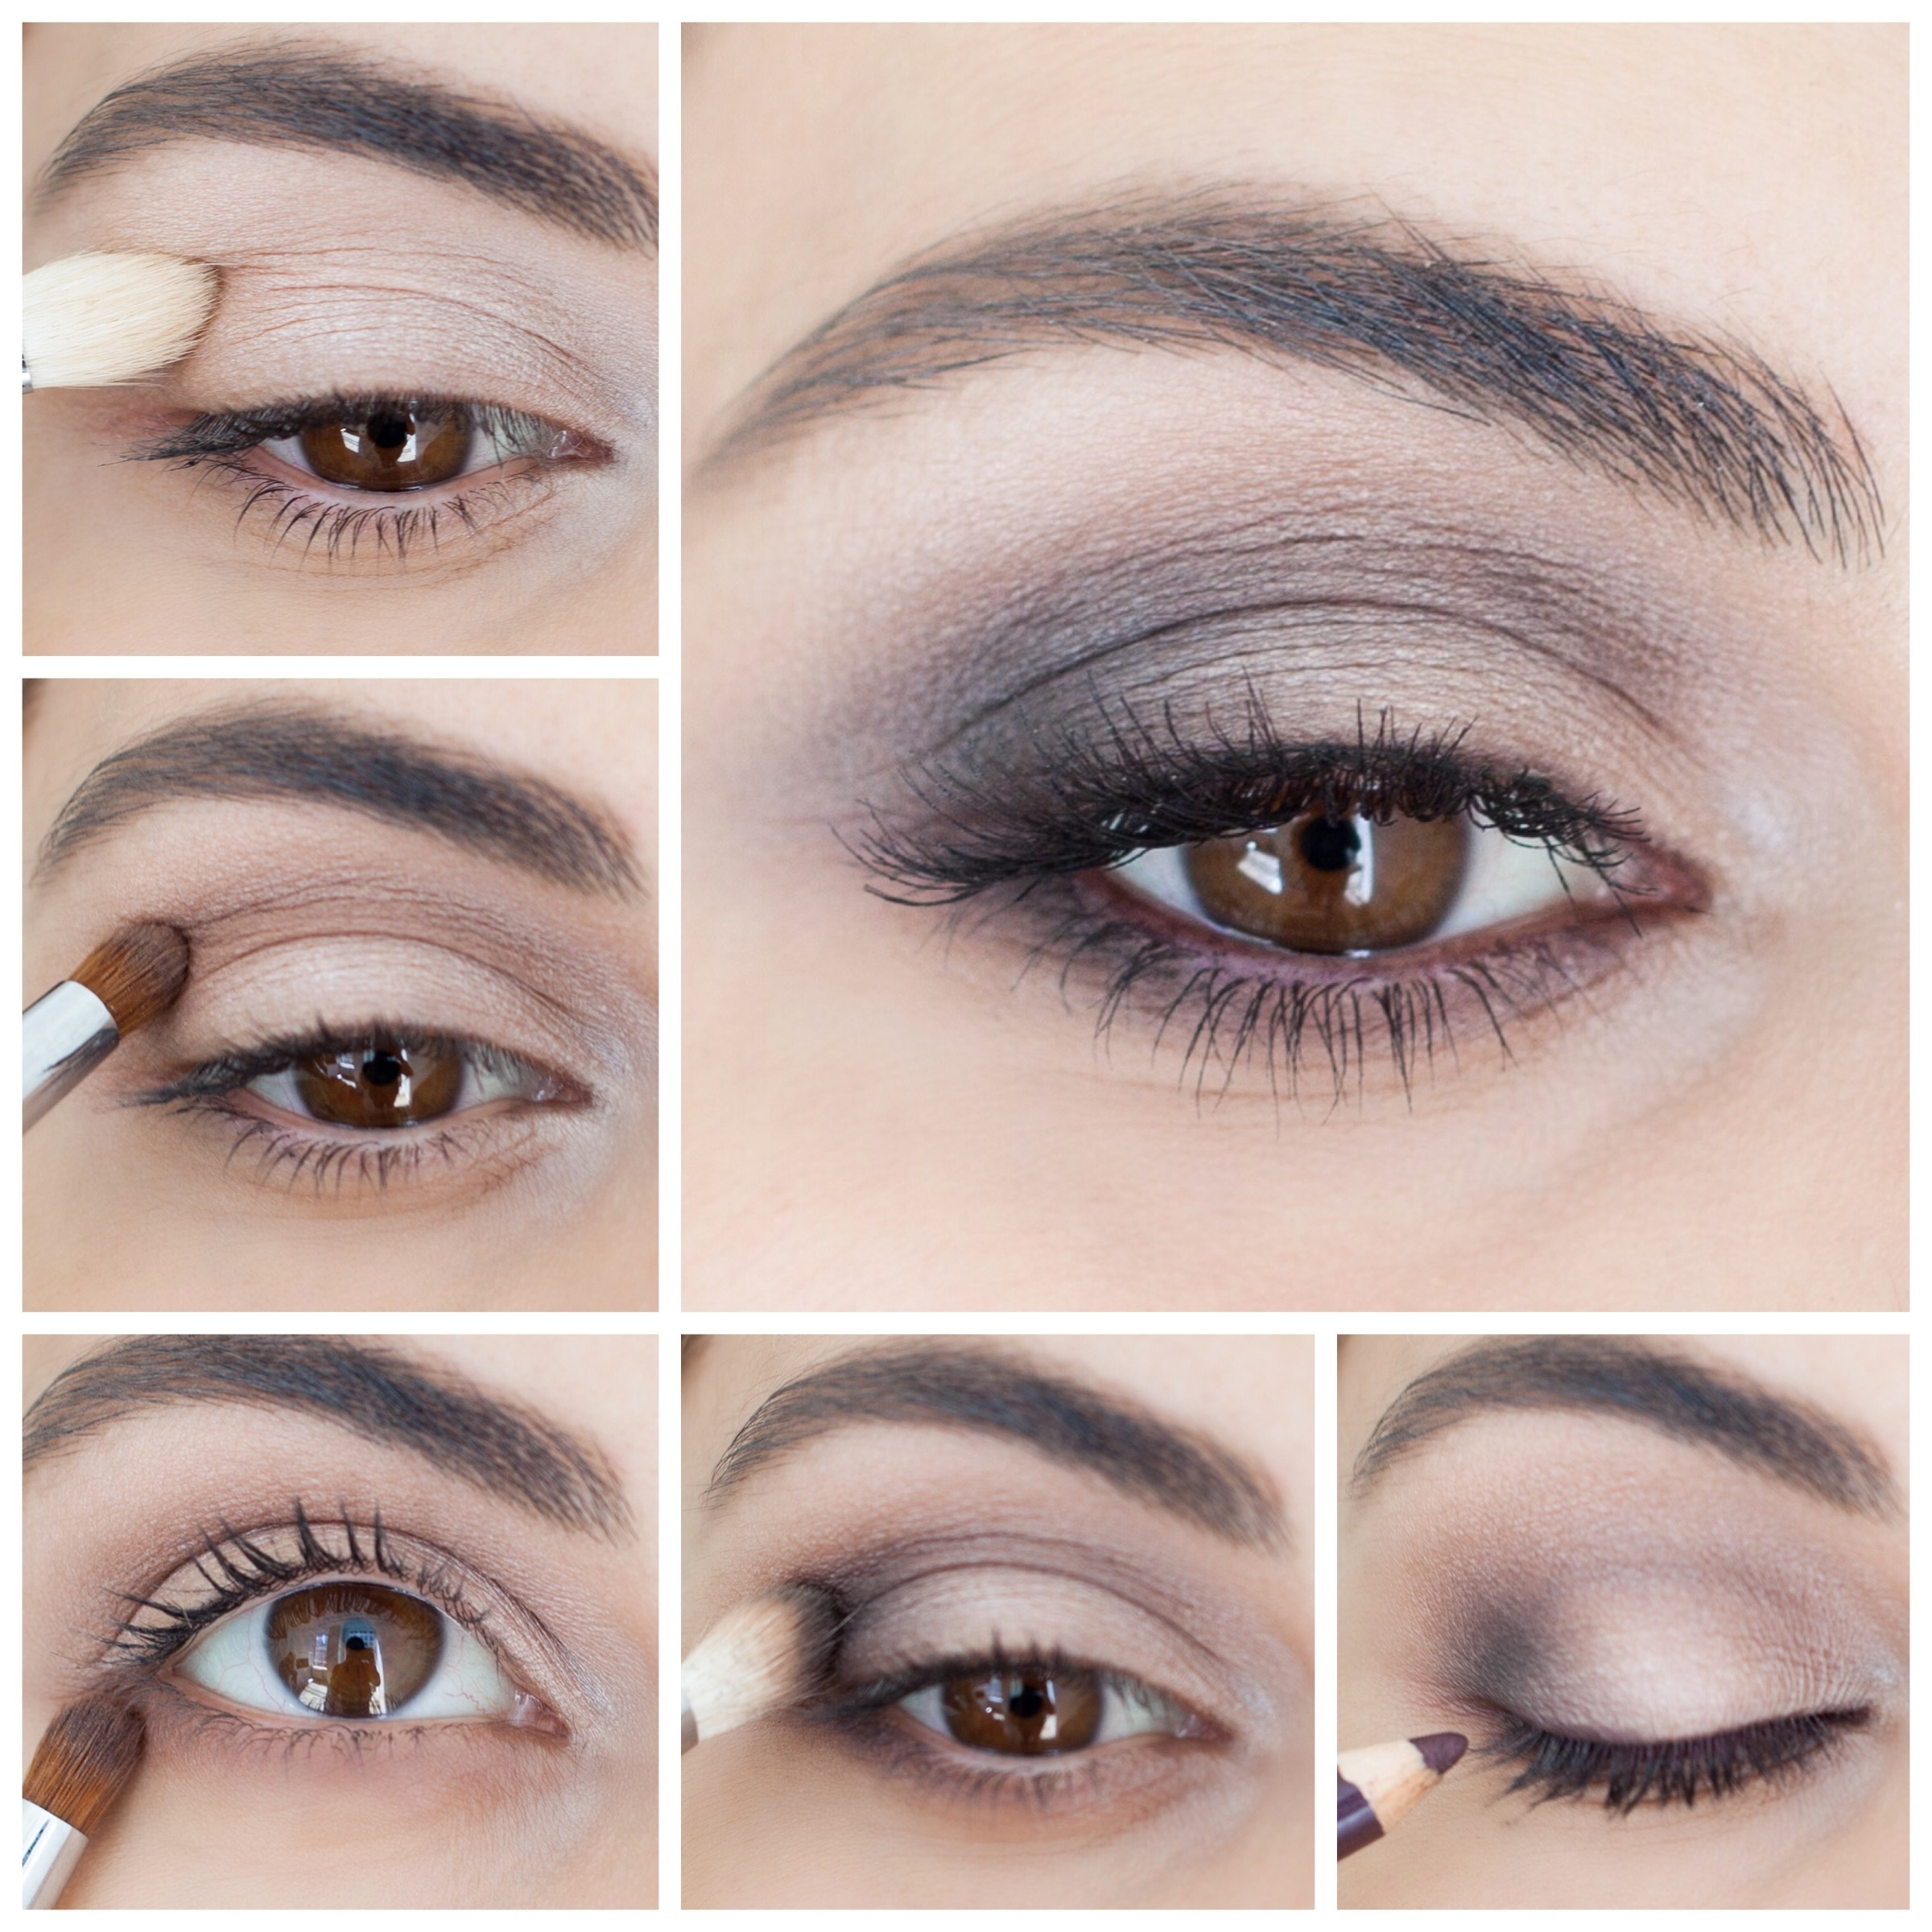 How To: Brown Smokey Eye - Simply Sona pertaining to Smoky Eye Steps With Pictures